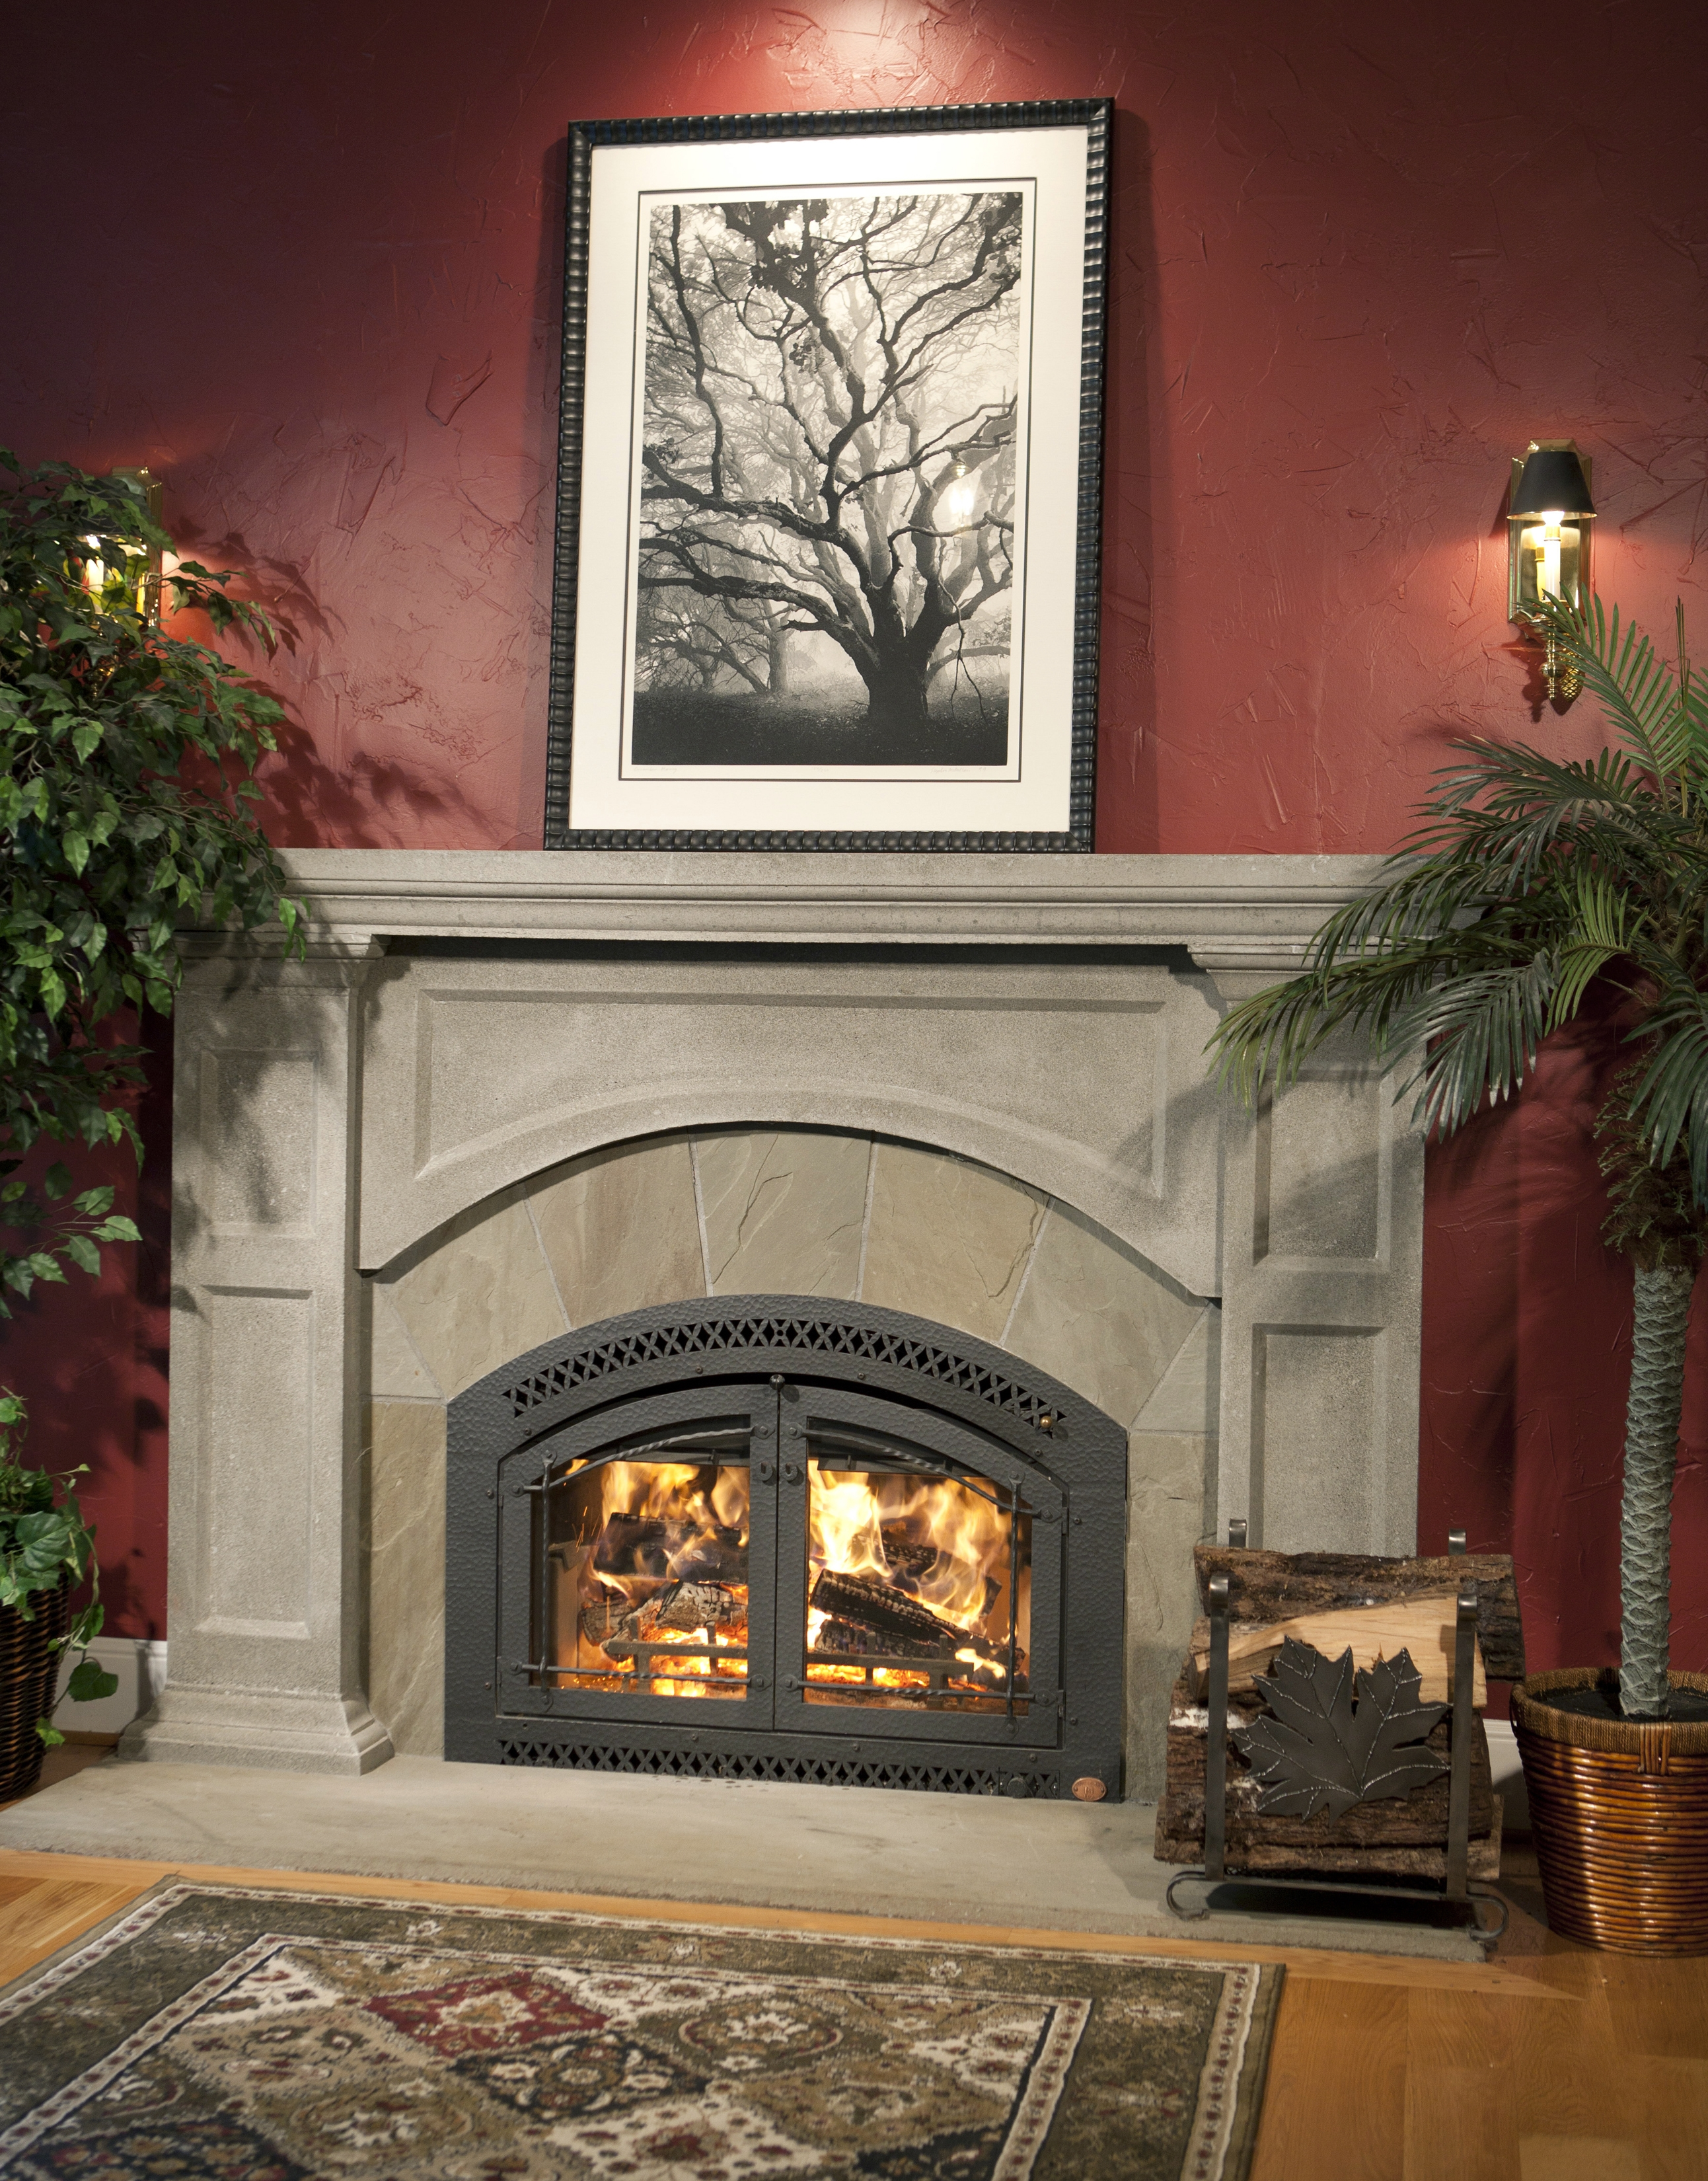 Another Image of the 44 Elite woodburning fireplace featuring a traditional face.